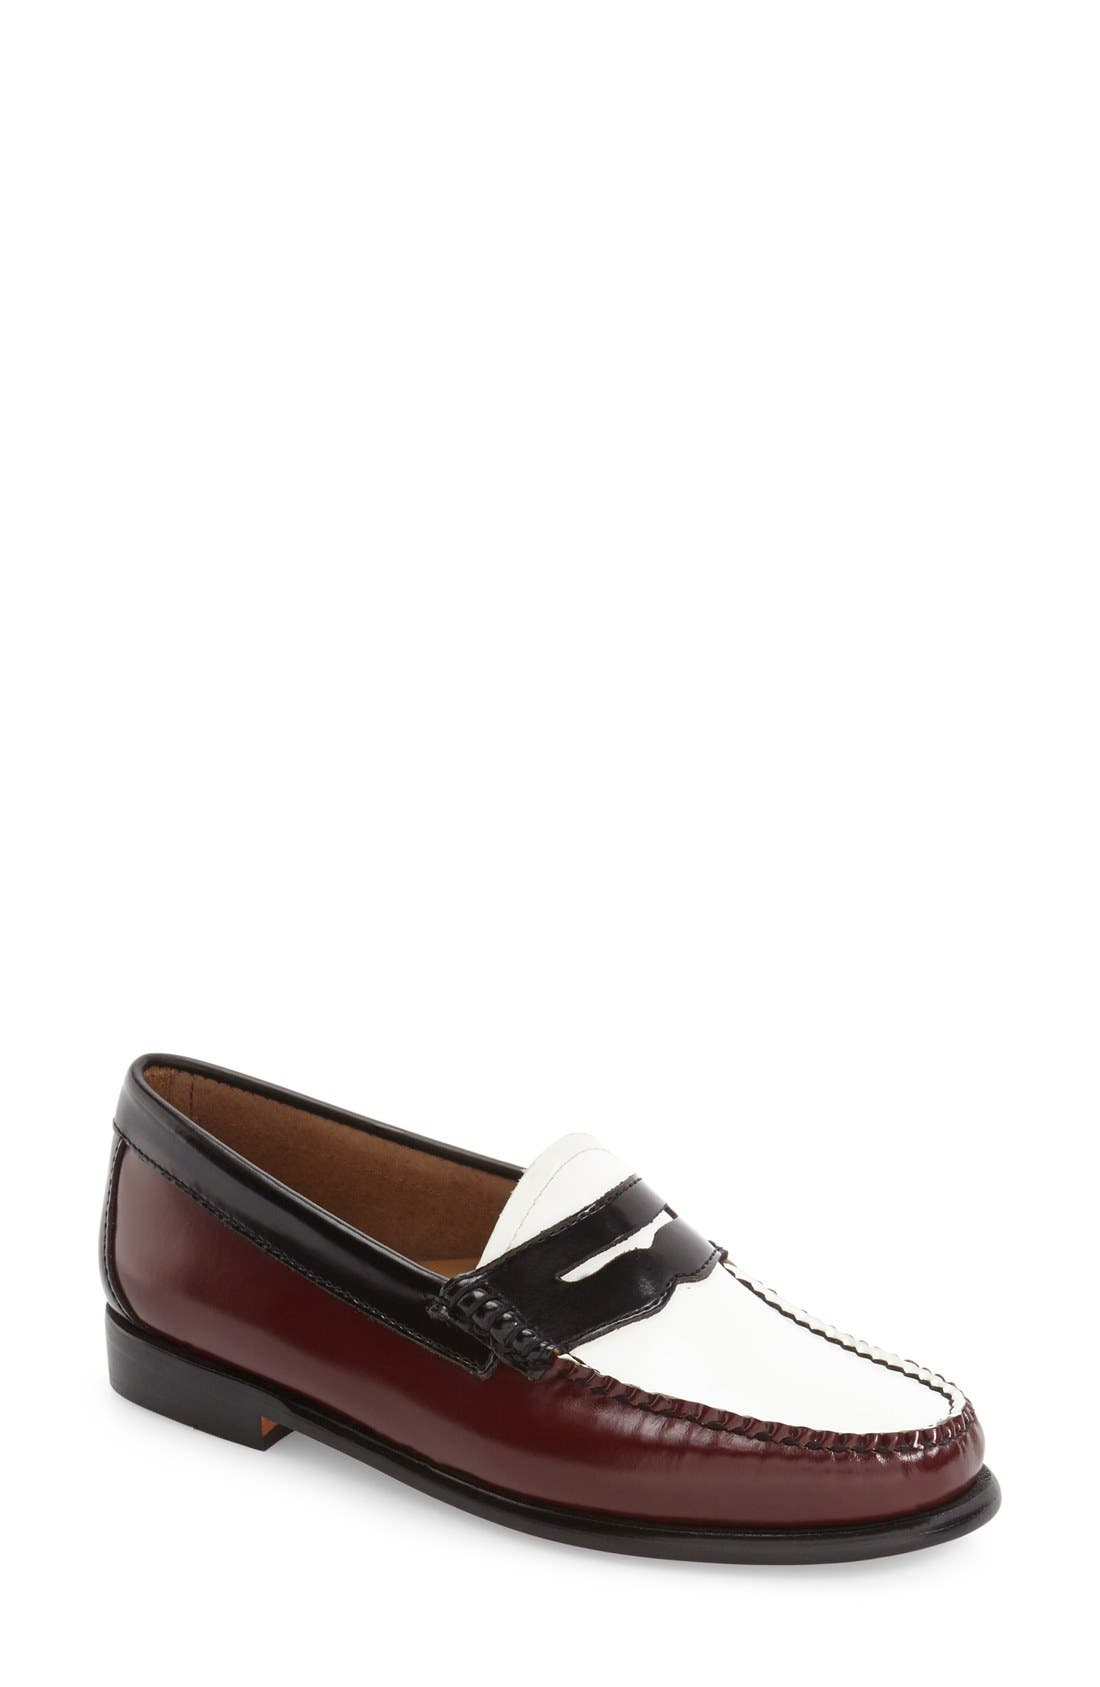 'Whitney' Loafer,                             Main thumbnail 38, color,